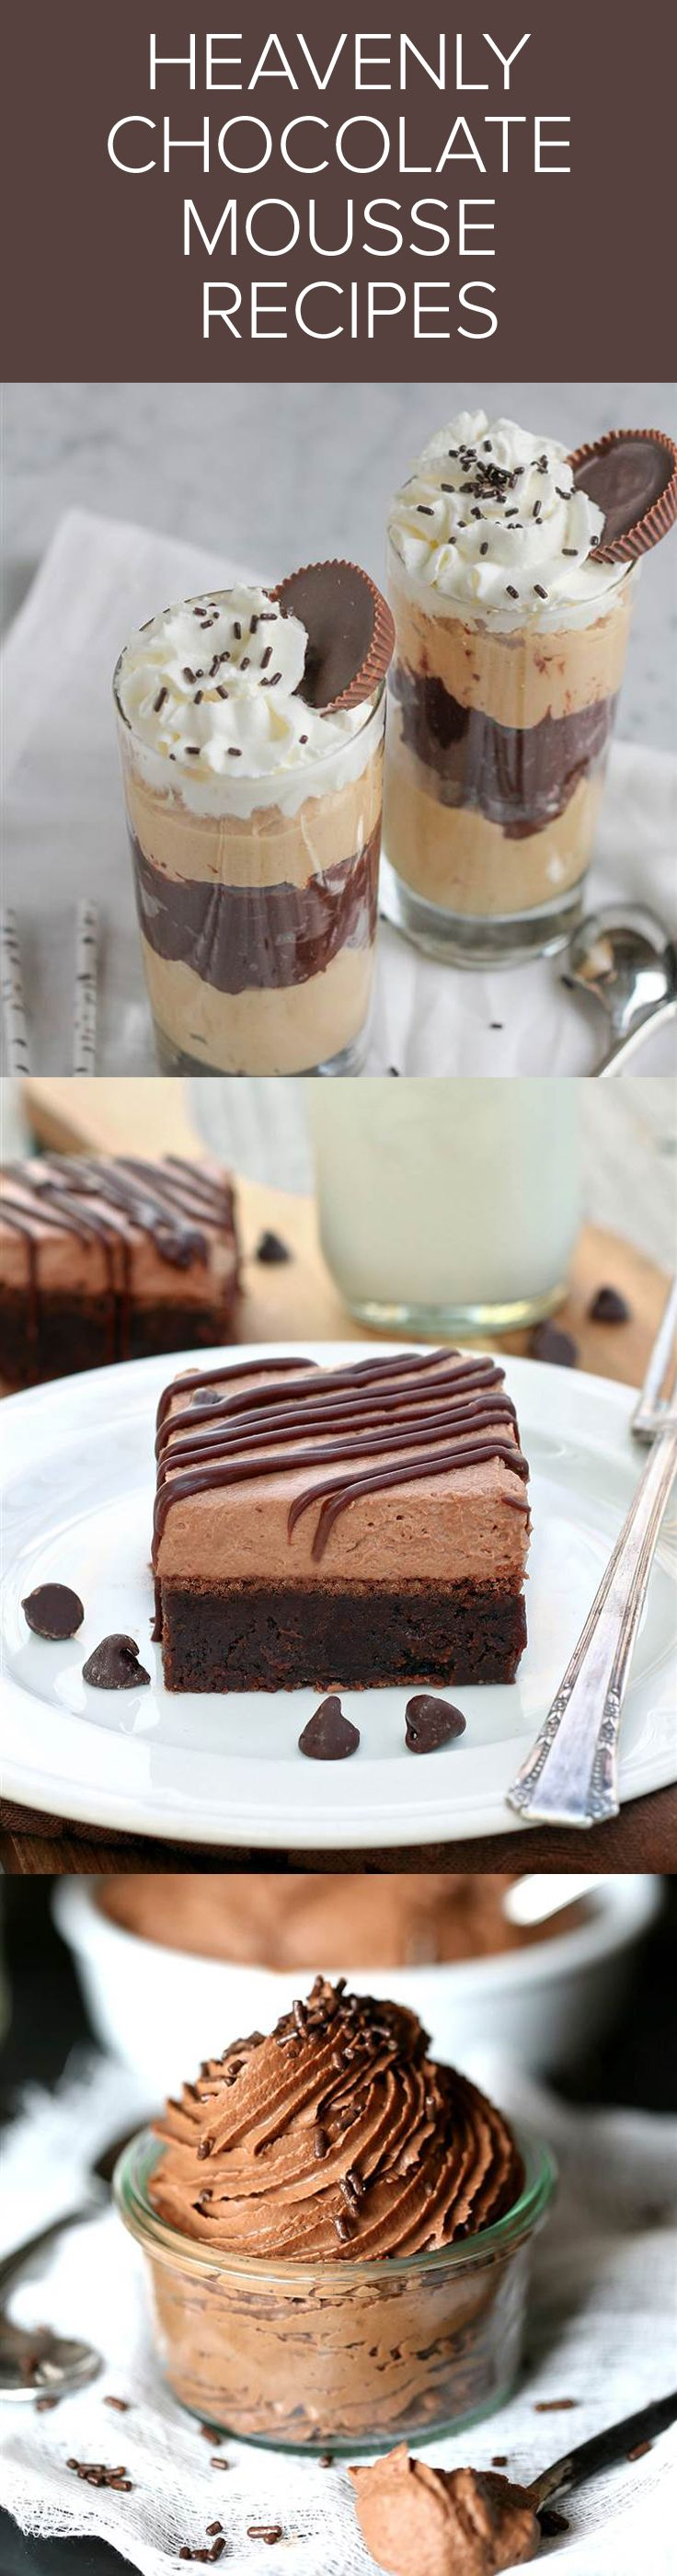 Loving spoonfuls: 5 amazing chocolate mousse recipes